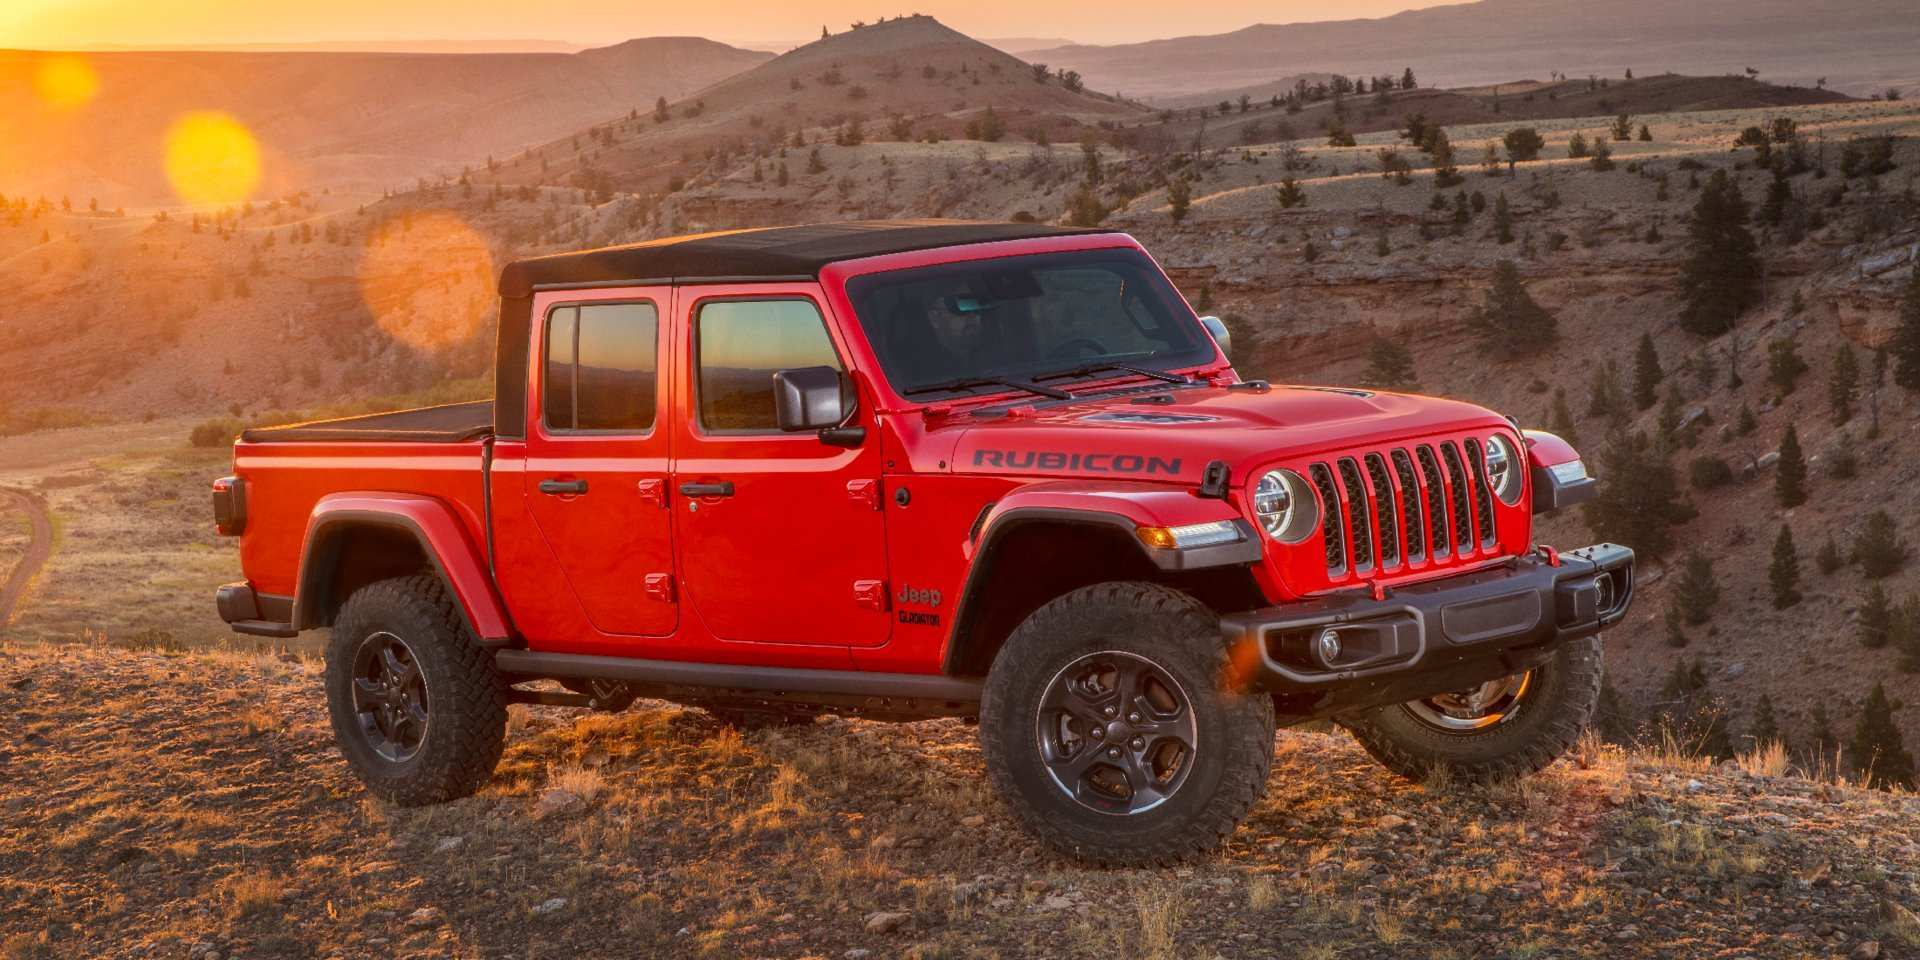 13 New 2019 Jeep Gladiator Interior for 2019 Jeep Gladiator